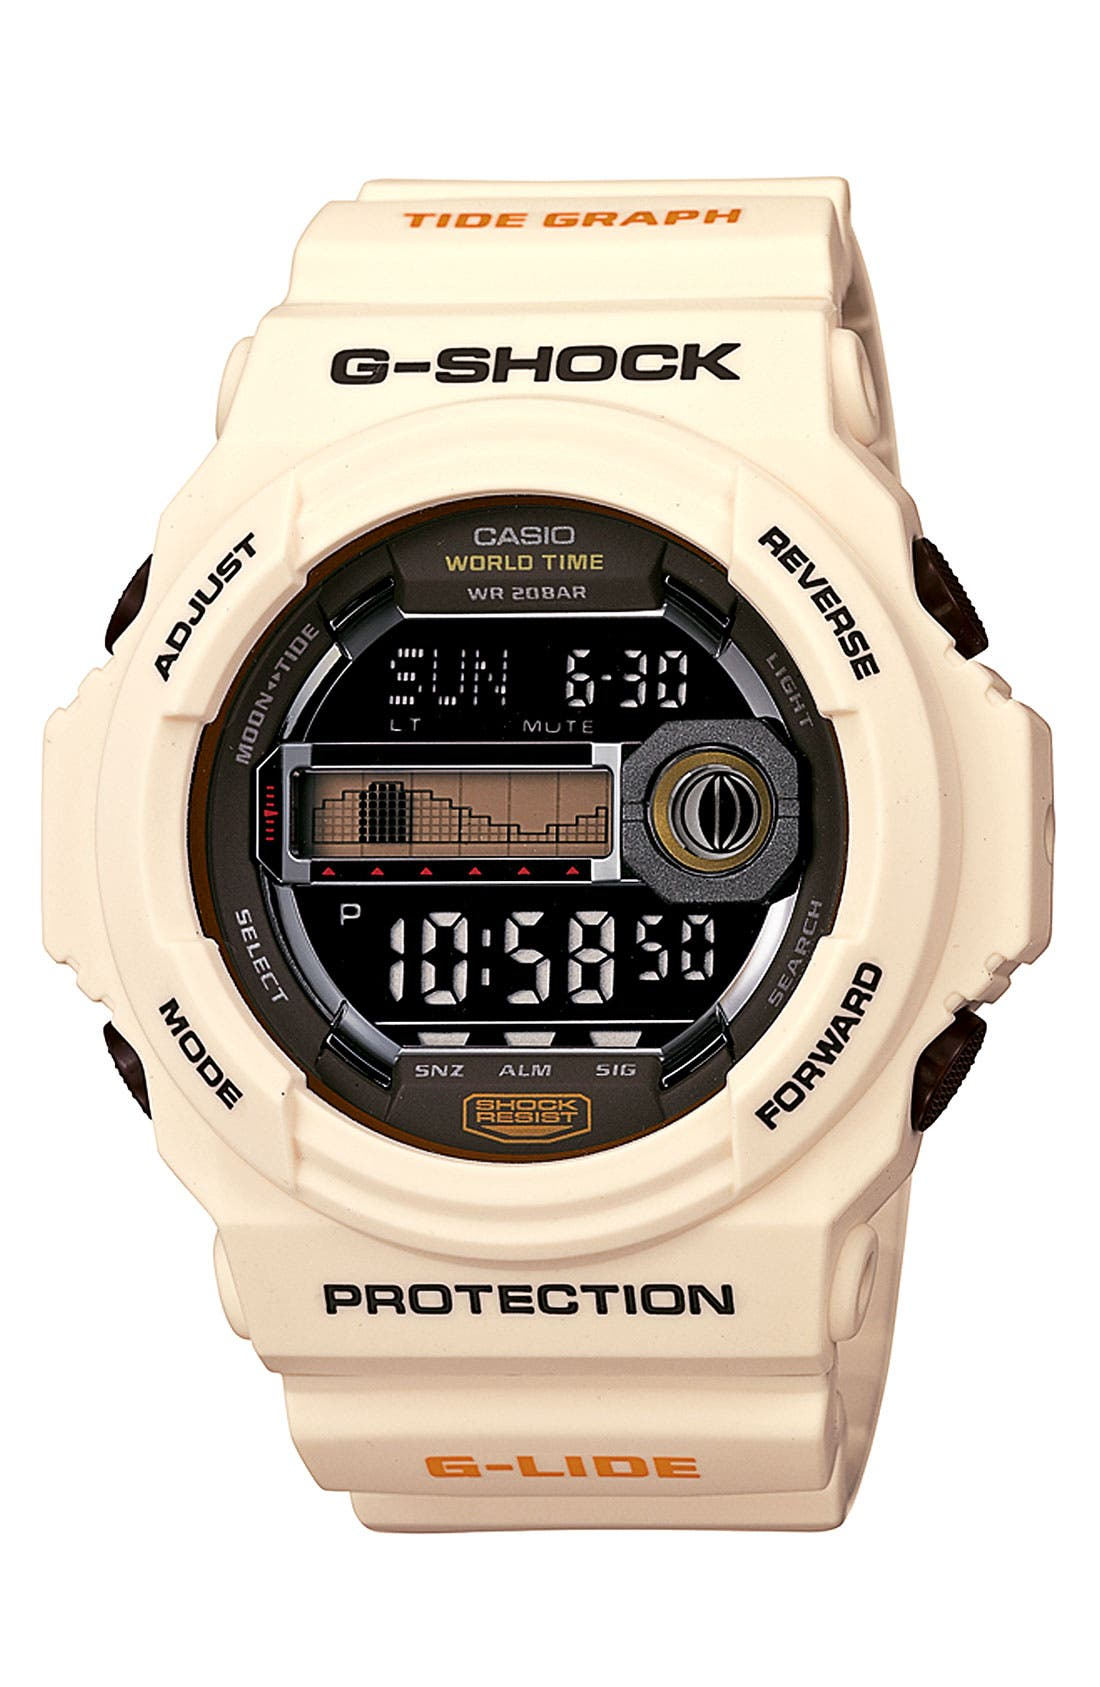 Main Image - G-Shock 'Tidegraph' Digital Watch, 55mm x 52mm